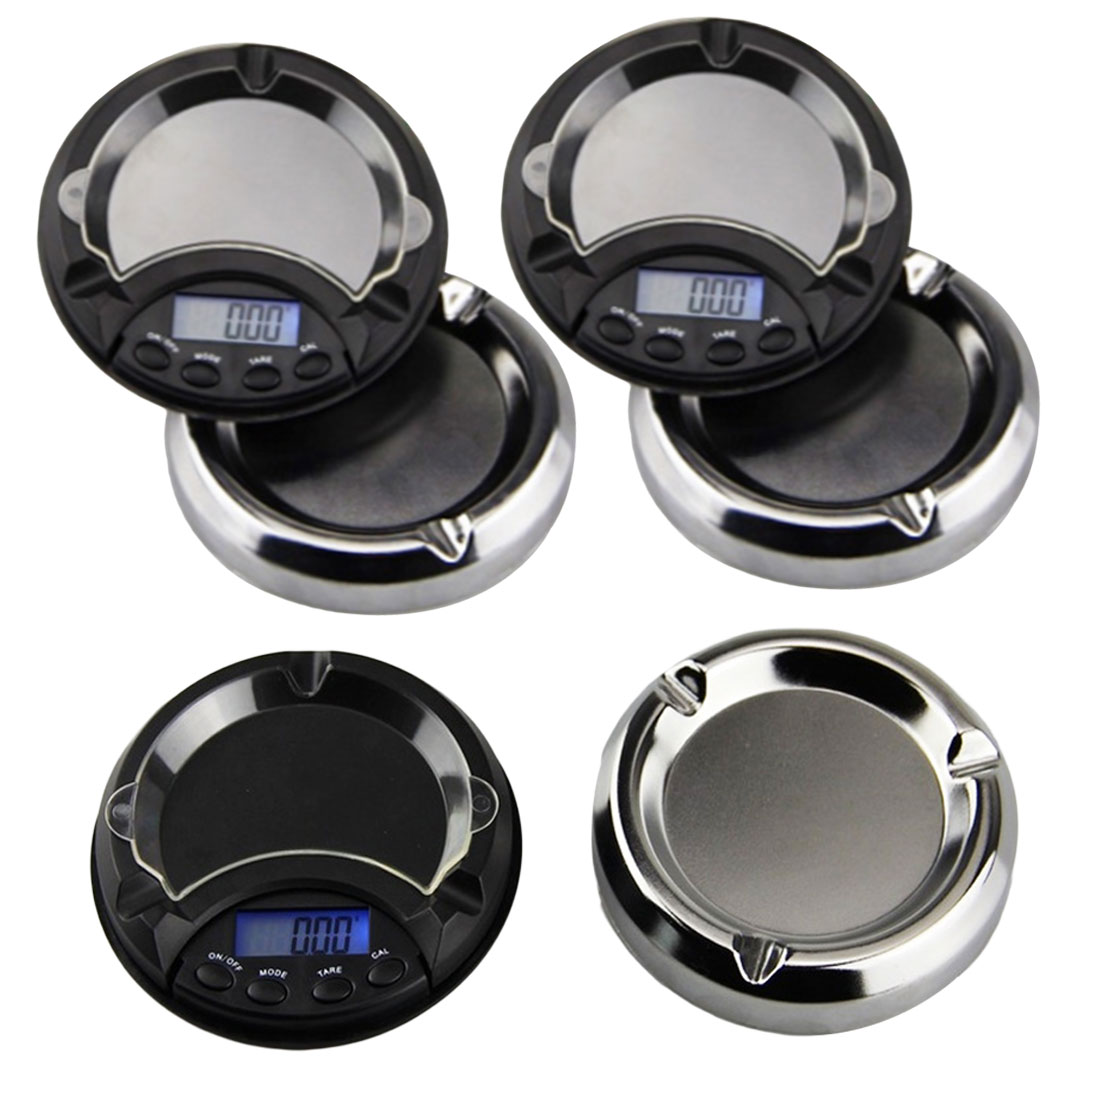 Mini balance 1pc 100-500/<font><b>0.01g</b></font> <font><b>Digital</b></font> <font><b>Scale</b></font> for libra jewelry <font><b>Pocket</b></font> electronic <font><b>scales</b></font> Multifunctional <font><b>Scales</b></font> Ashtray <font><b>scale</b></font> image